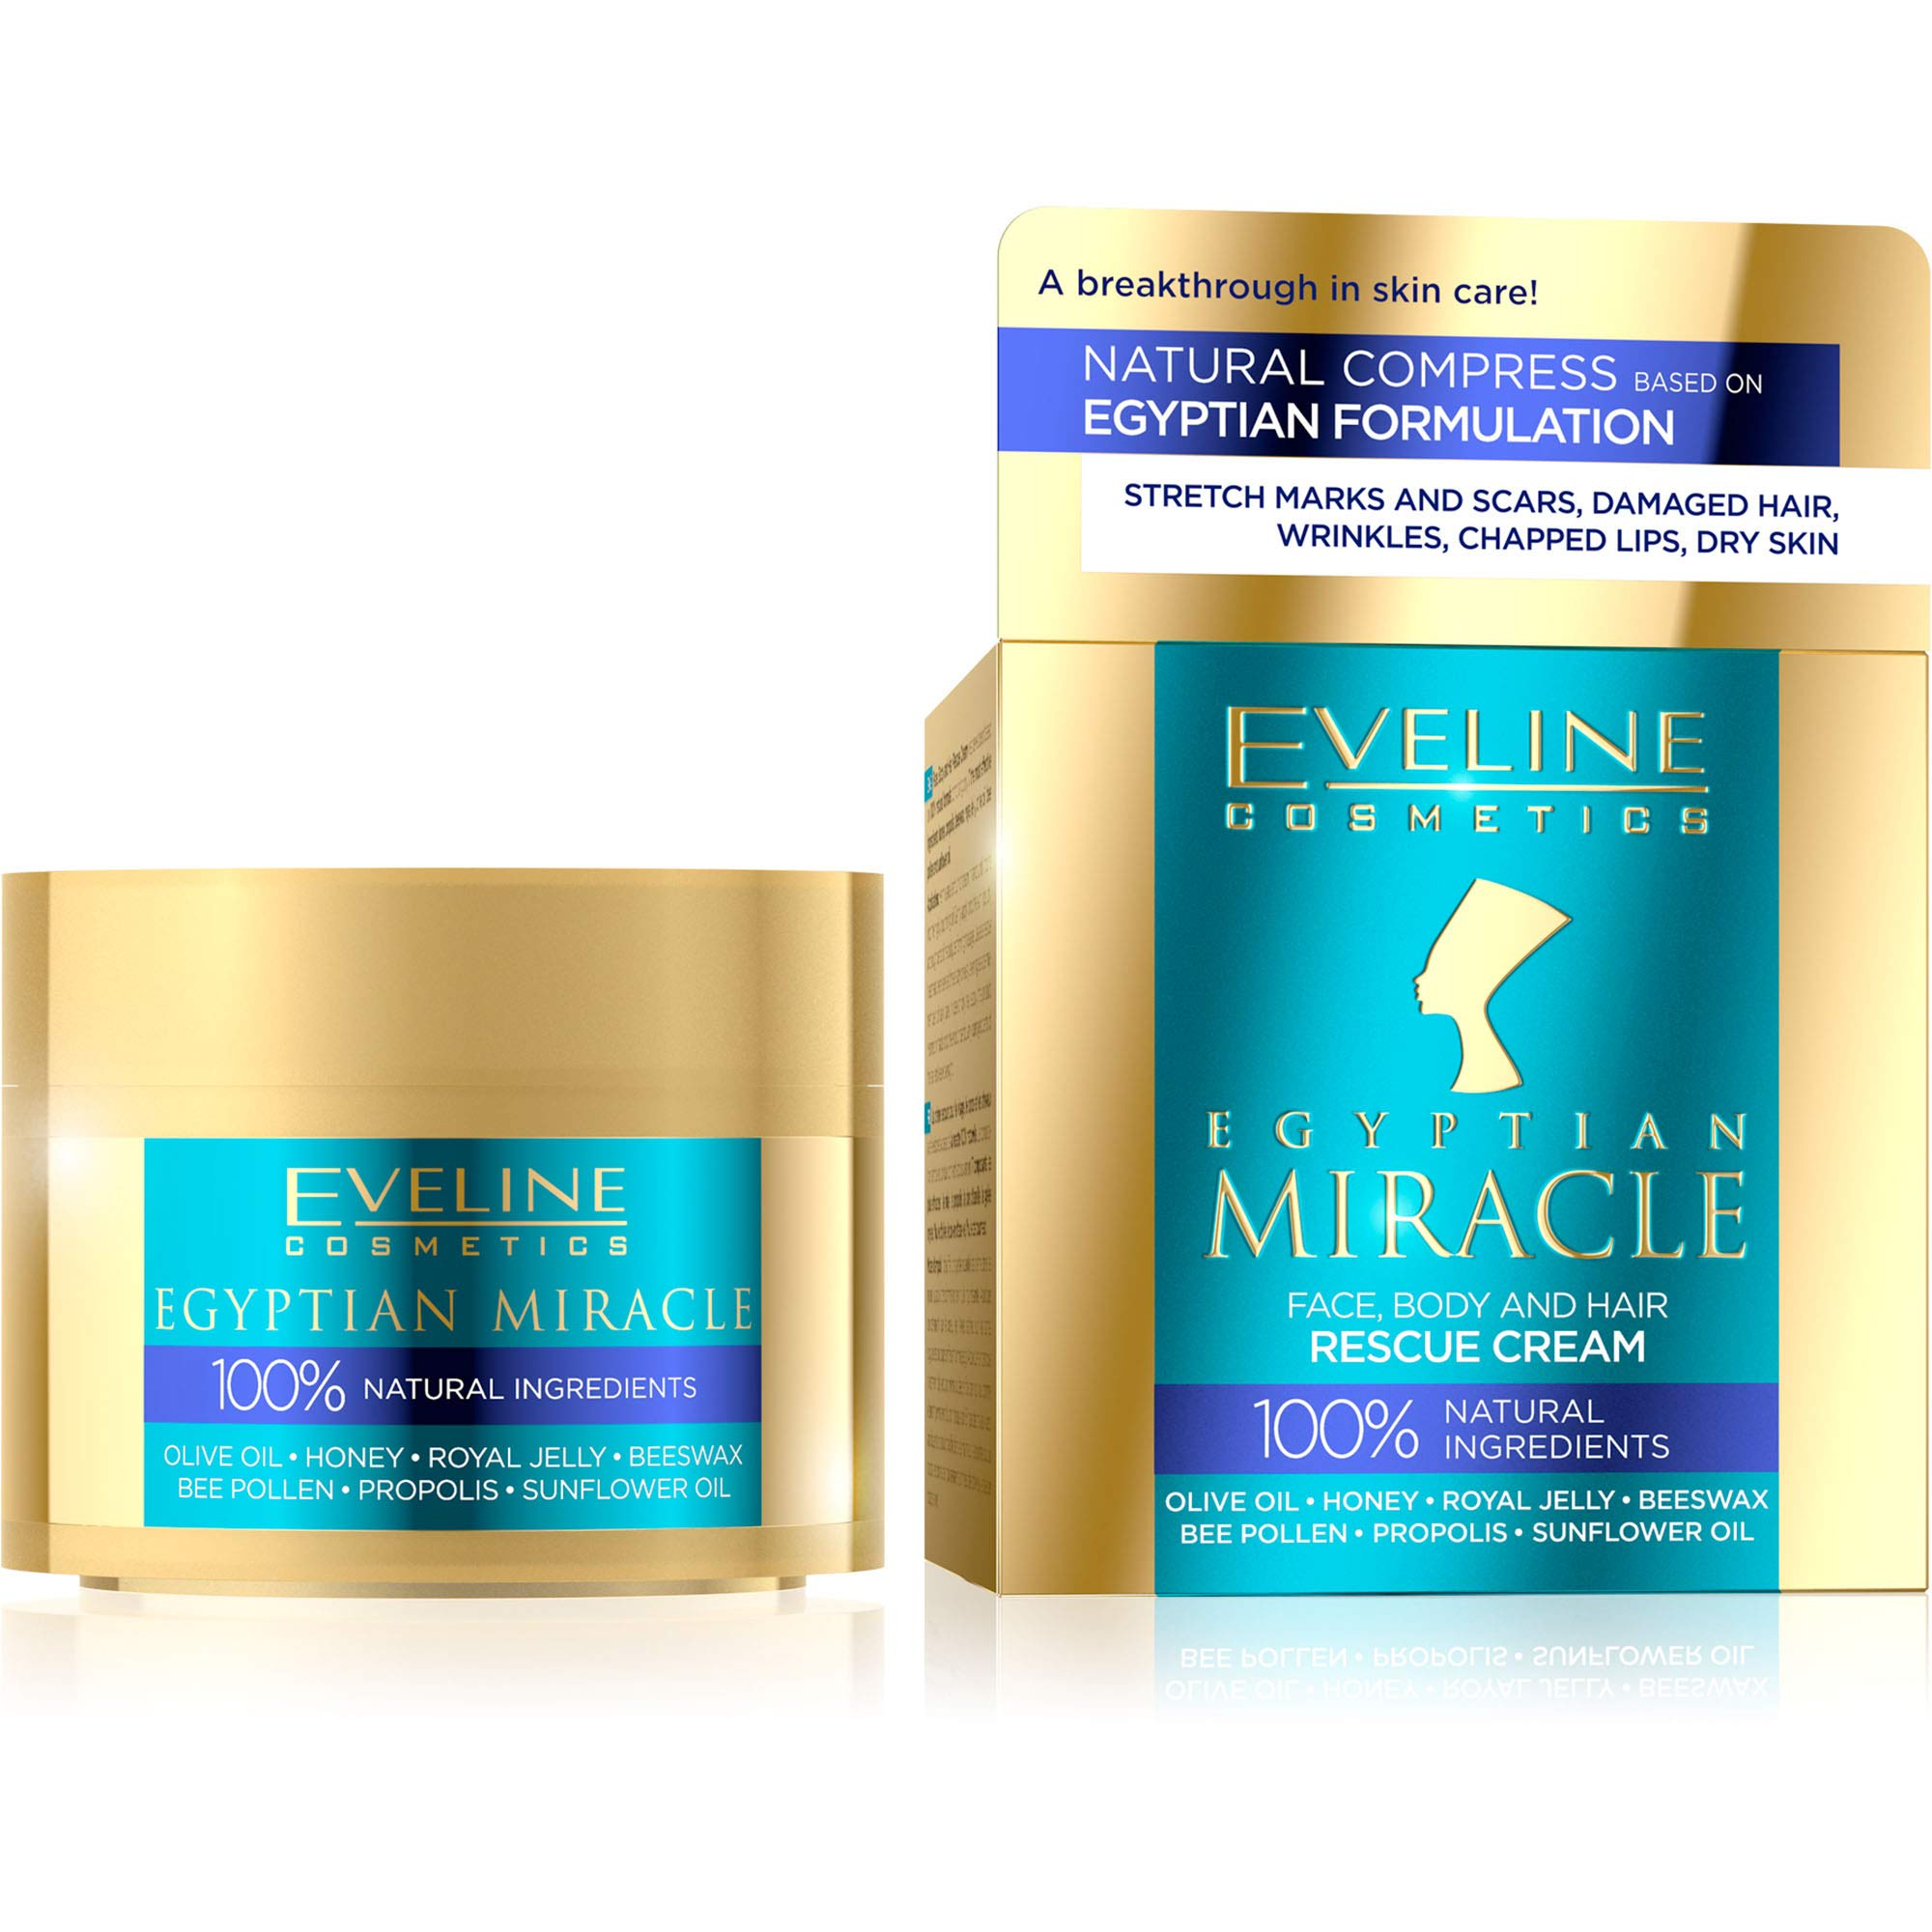 Eveline Cosmetics Egyptian Miracle - Face, Body and Hair Universal Rescue Cream | 40 ML | Natural Ingredients | Complex Care | Healing Properties | All-purpose Lotion | Soft Supple Skin | Shiny Hair